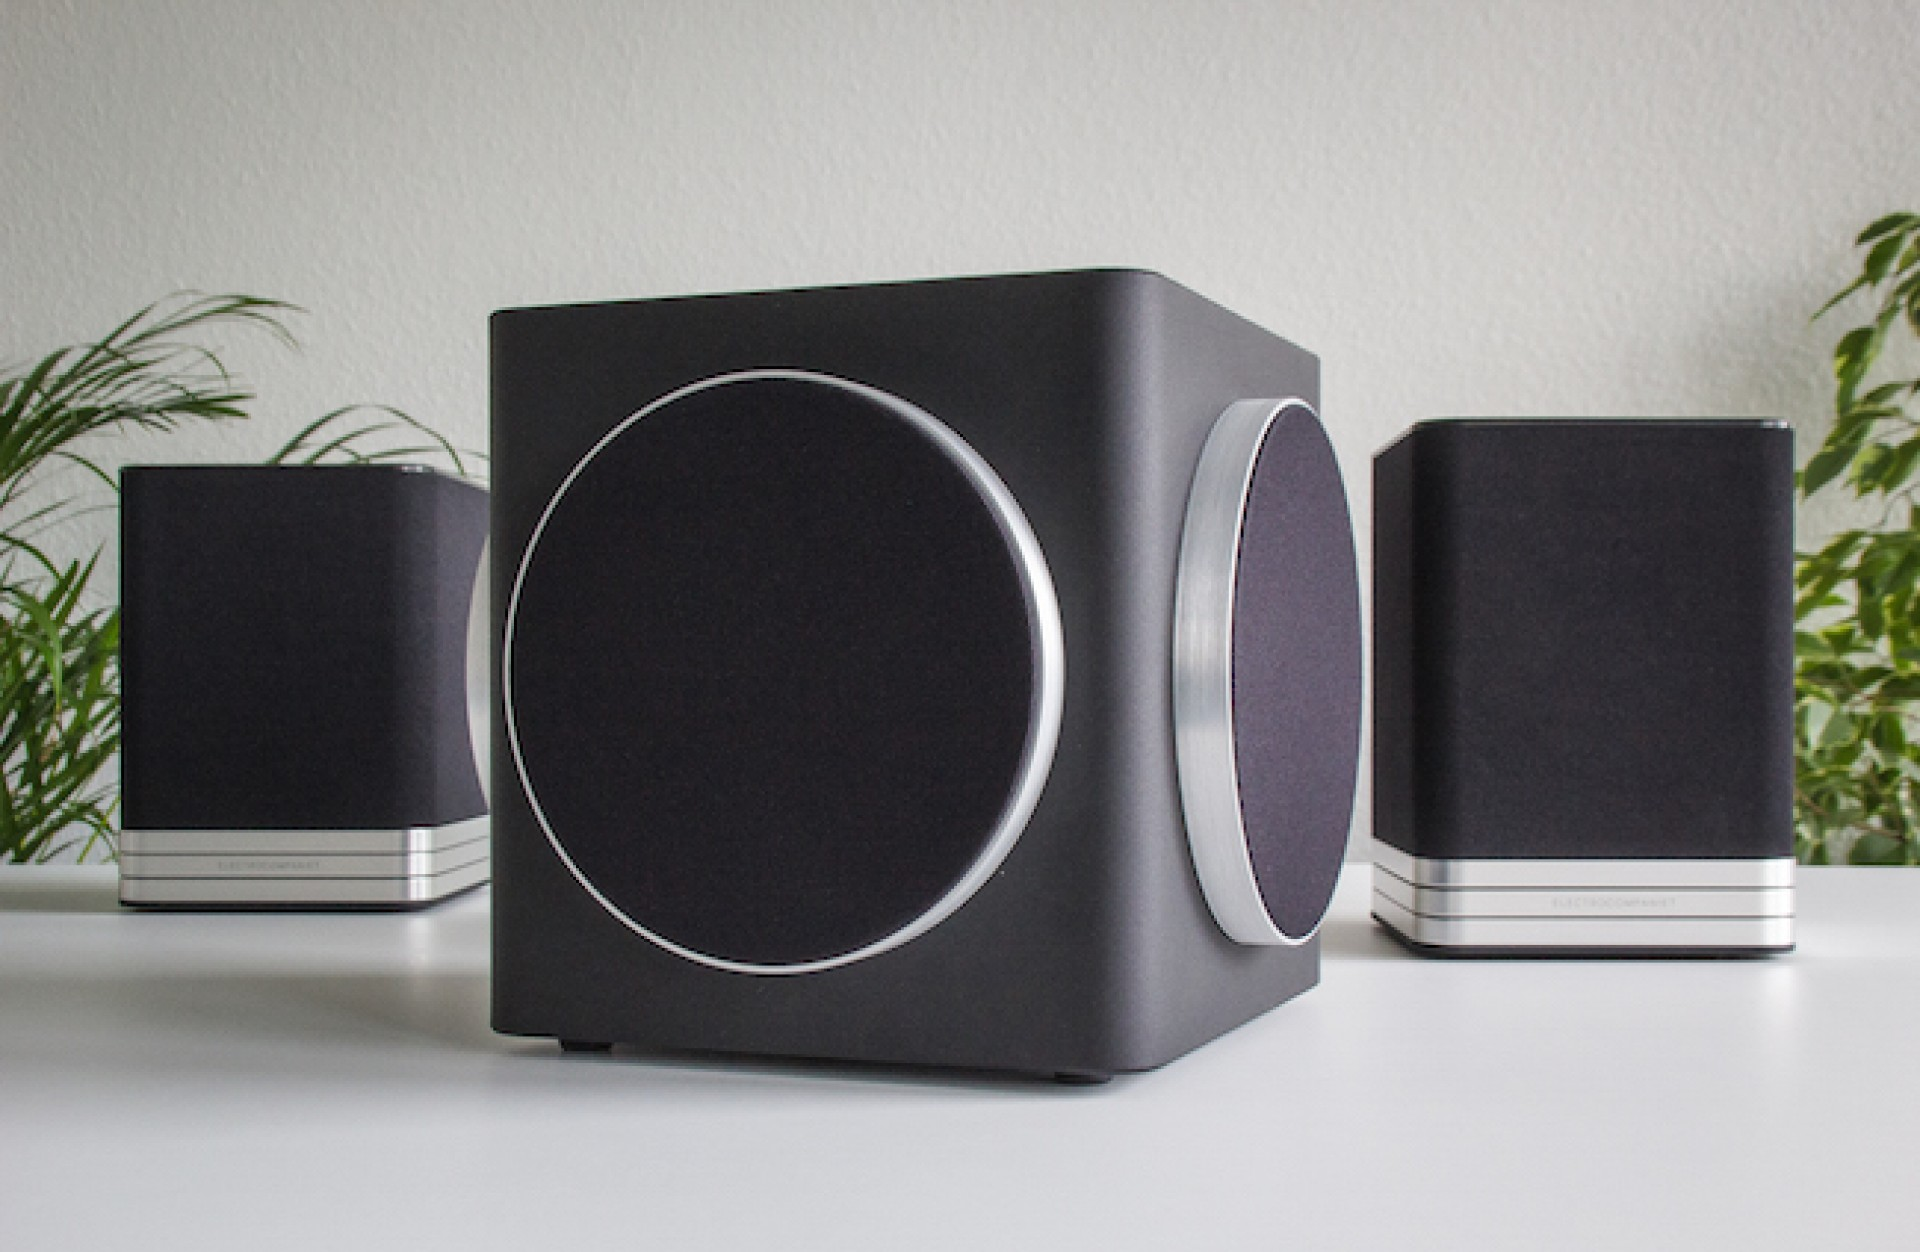 Premium wireless speaker system